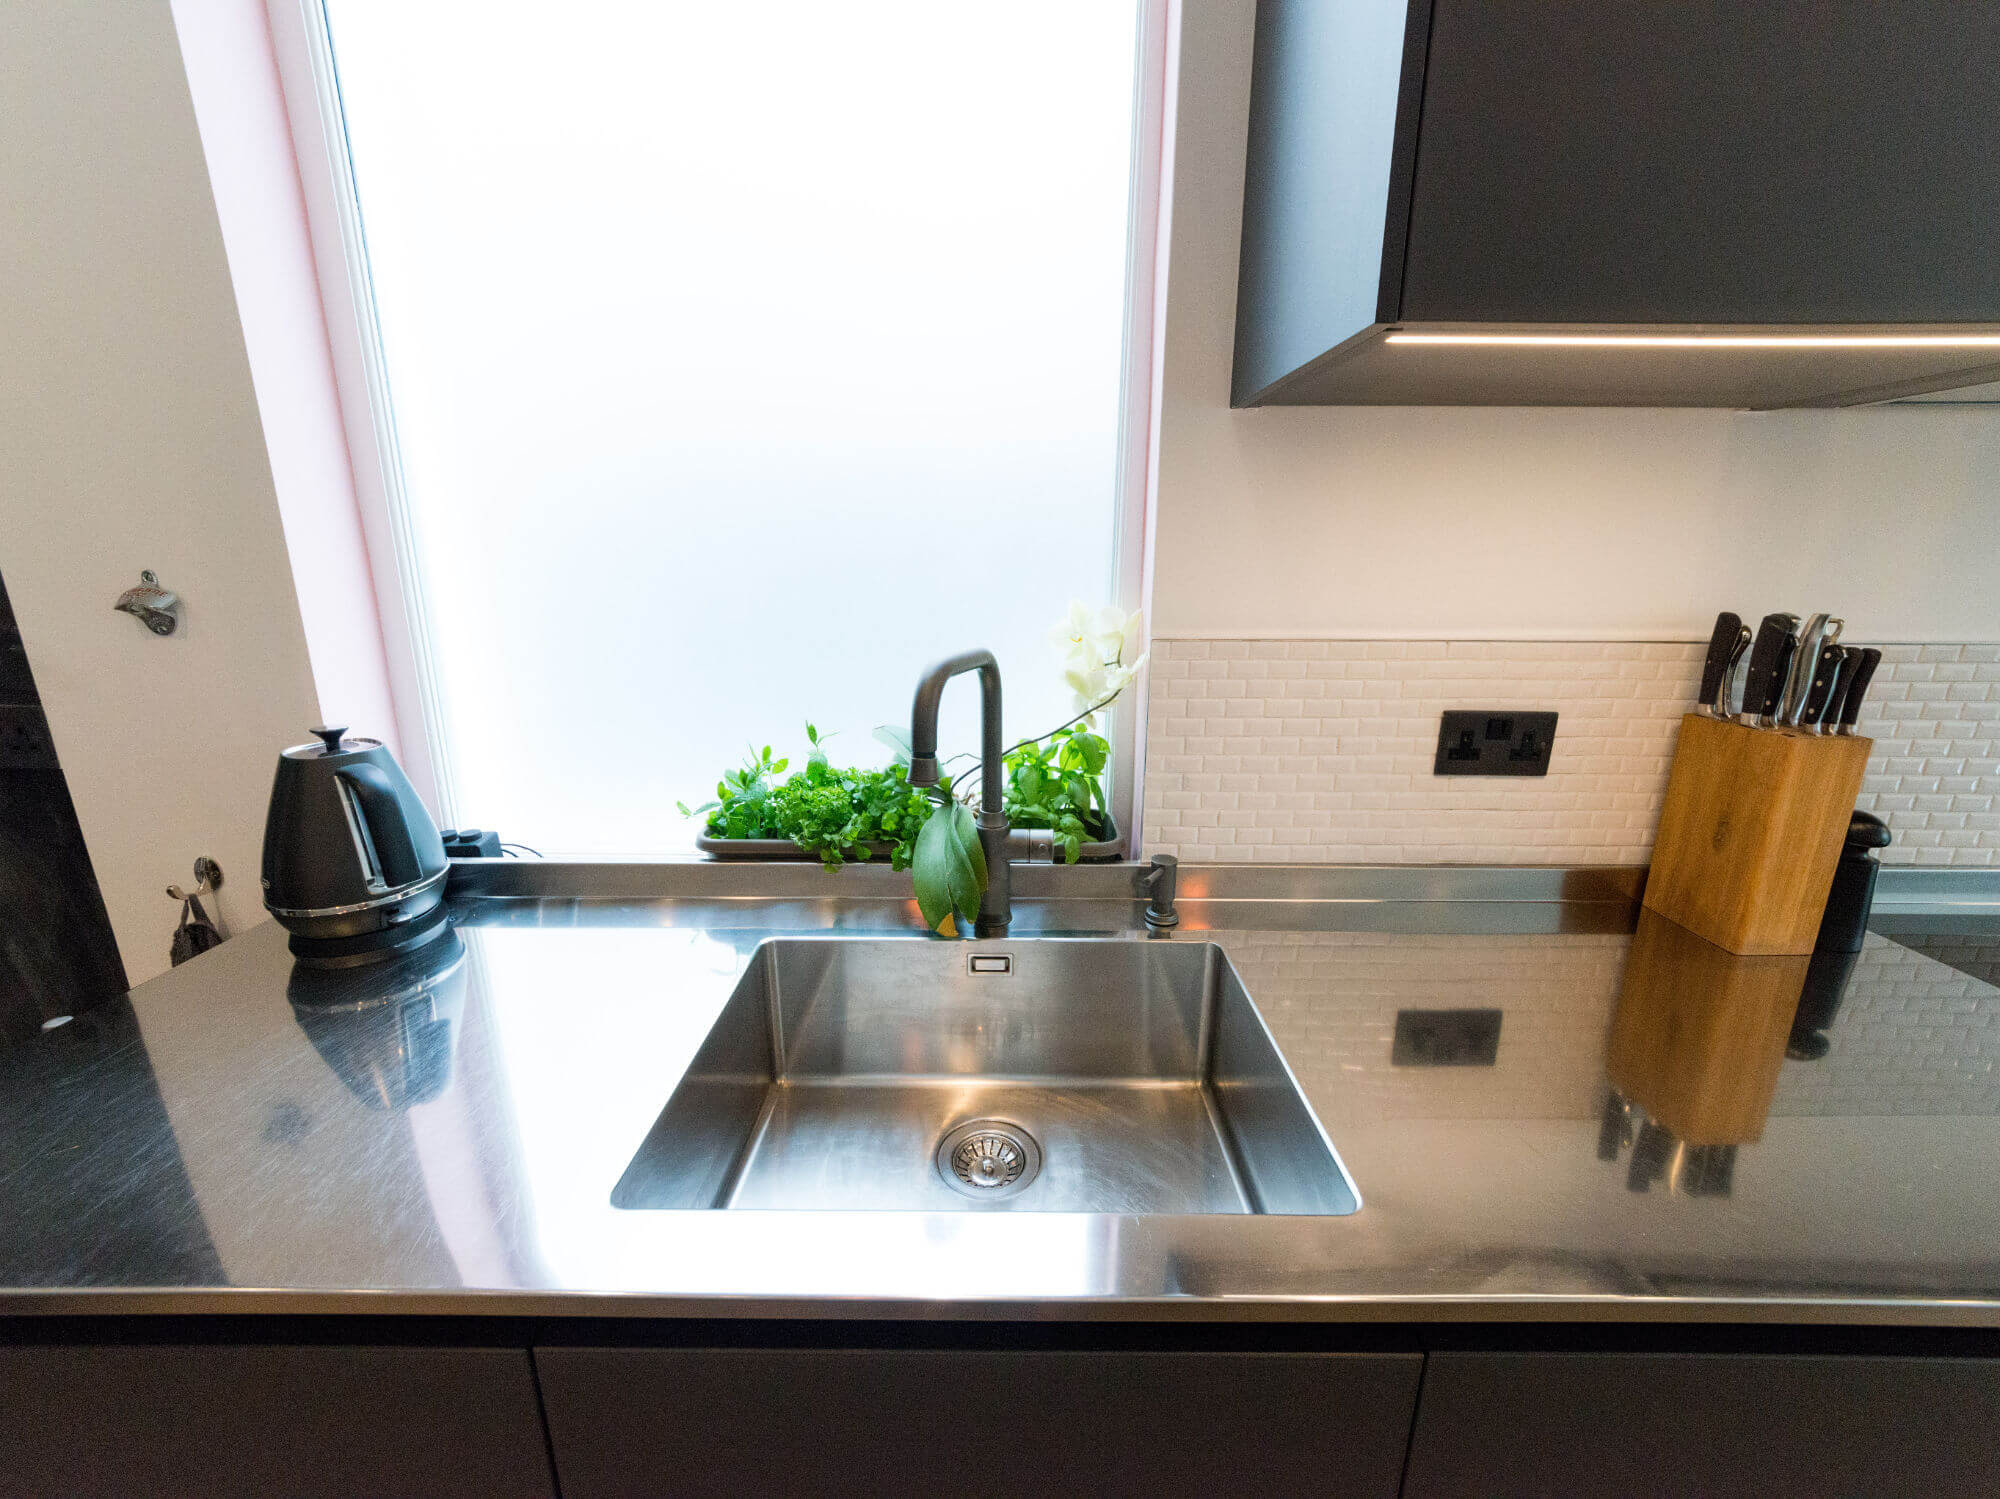 Integrated stainless steel sink